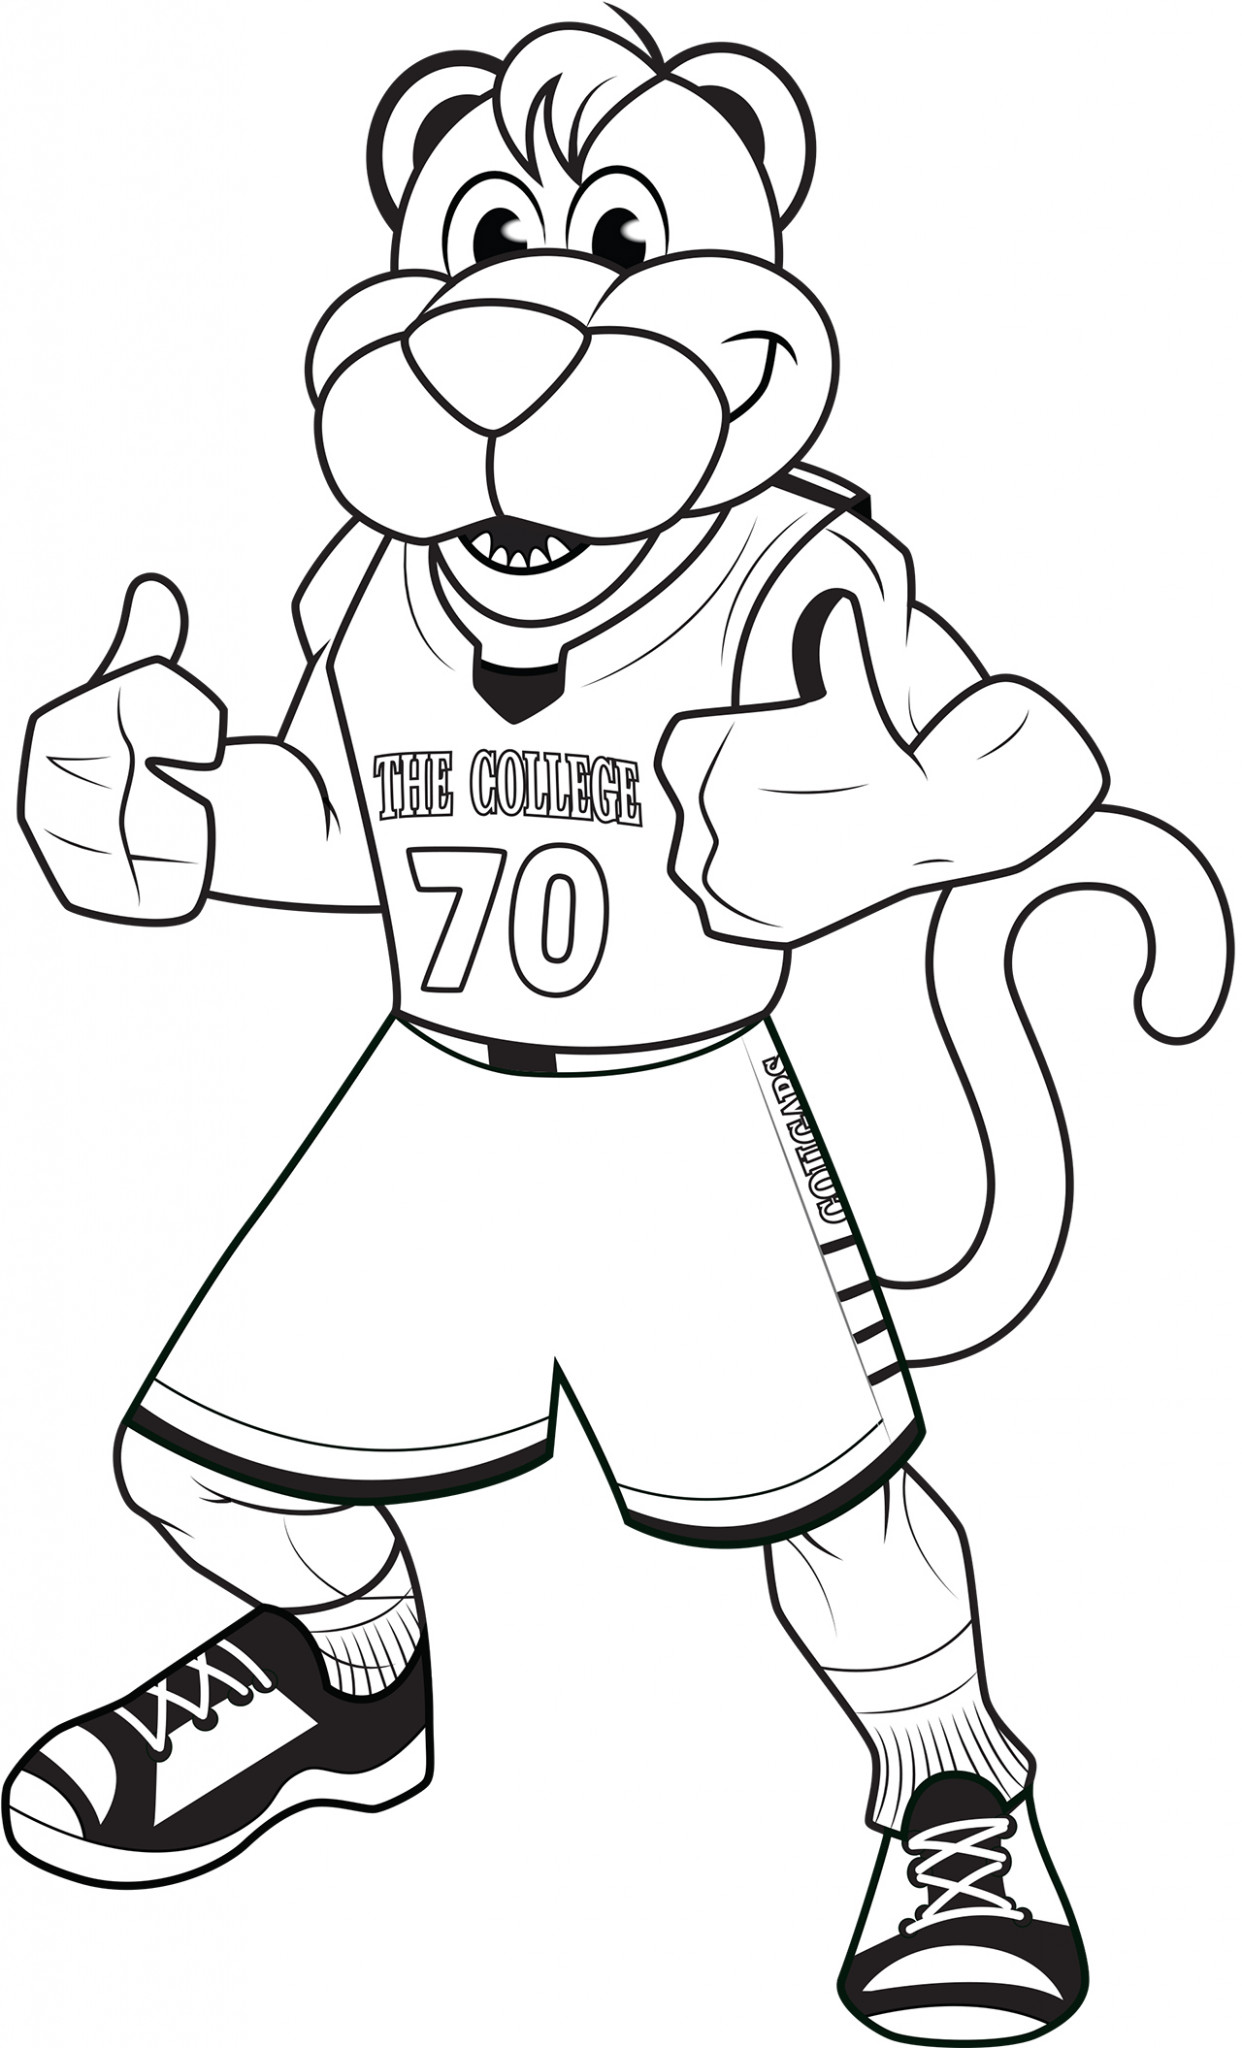 Make Cofc Your Own With These Fun Coloring Pages